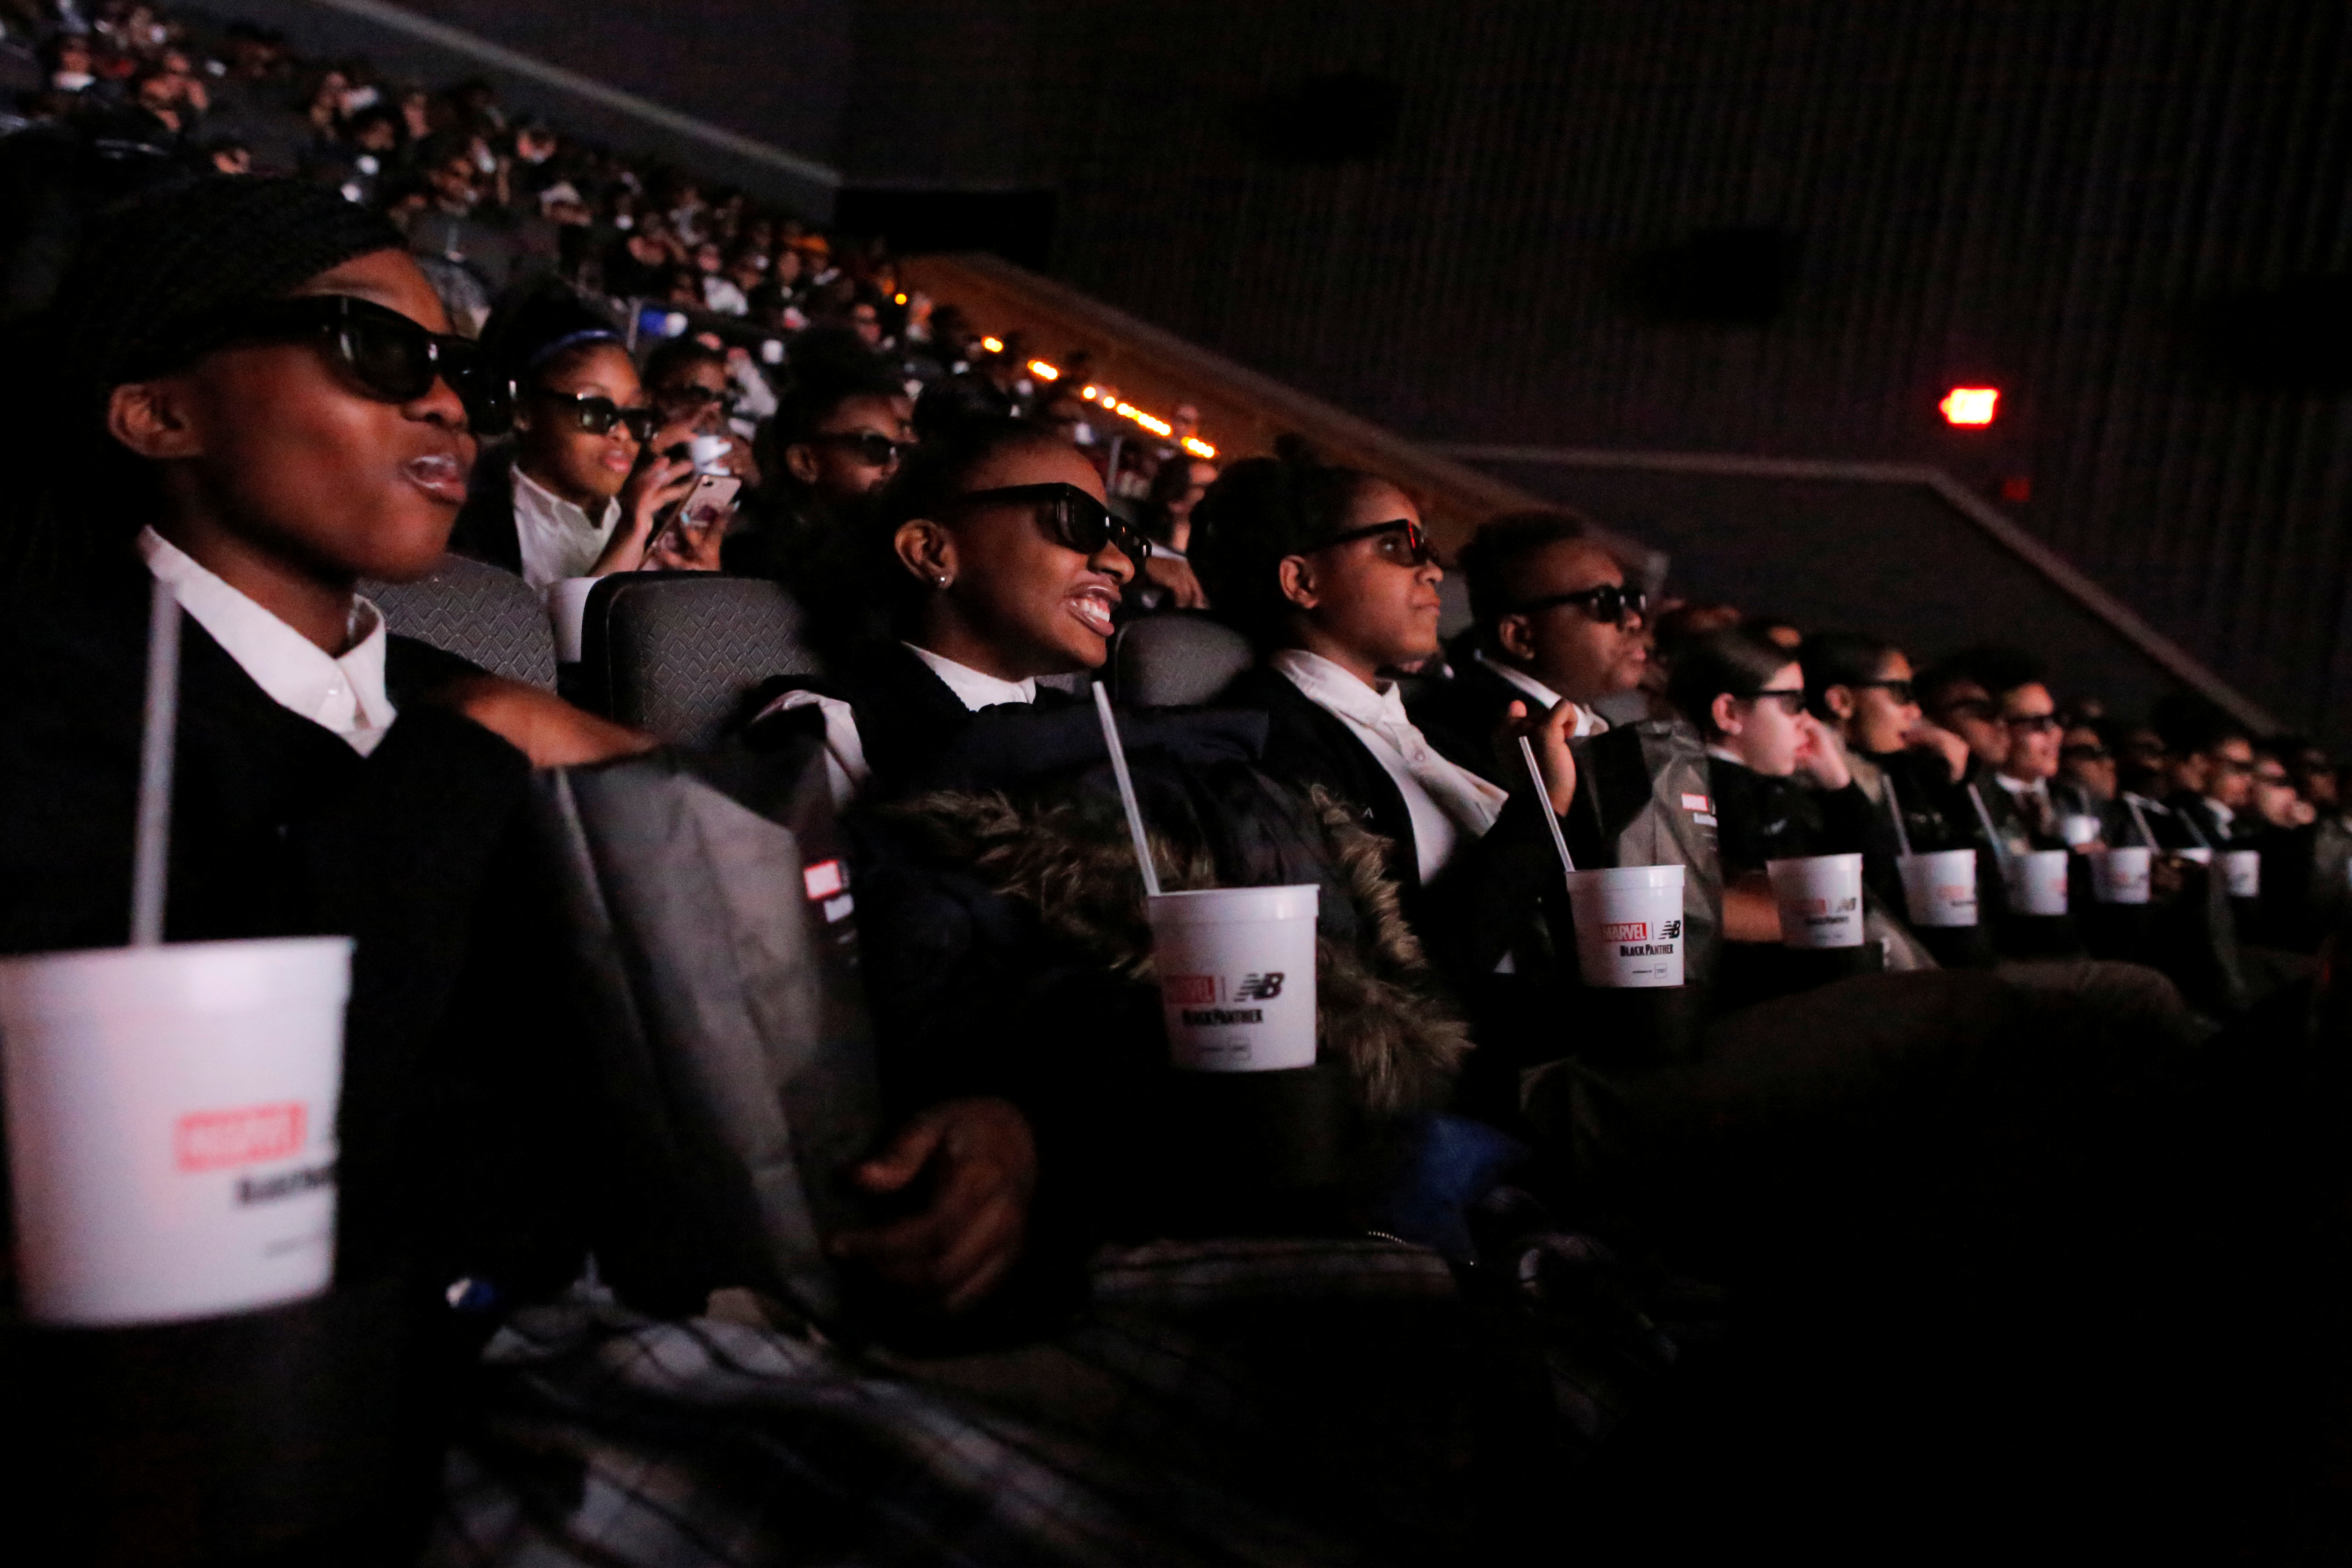 """Students from the Capital Preparatory Harlem School watch a screening of the film """"Black Panther"""" on its opening night."""